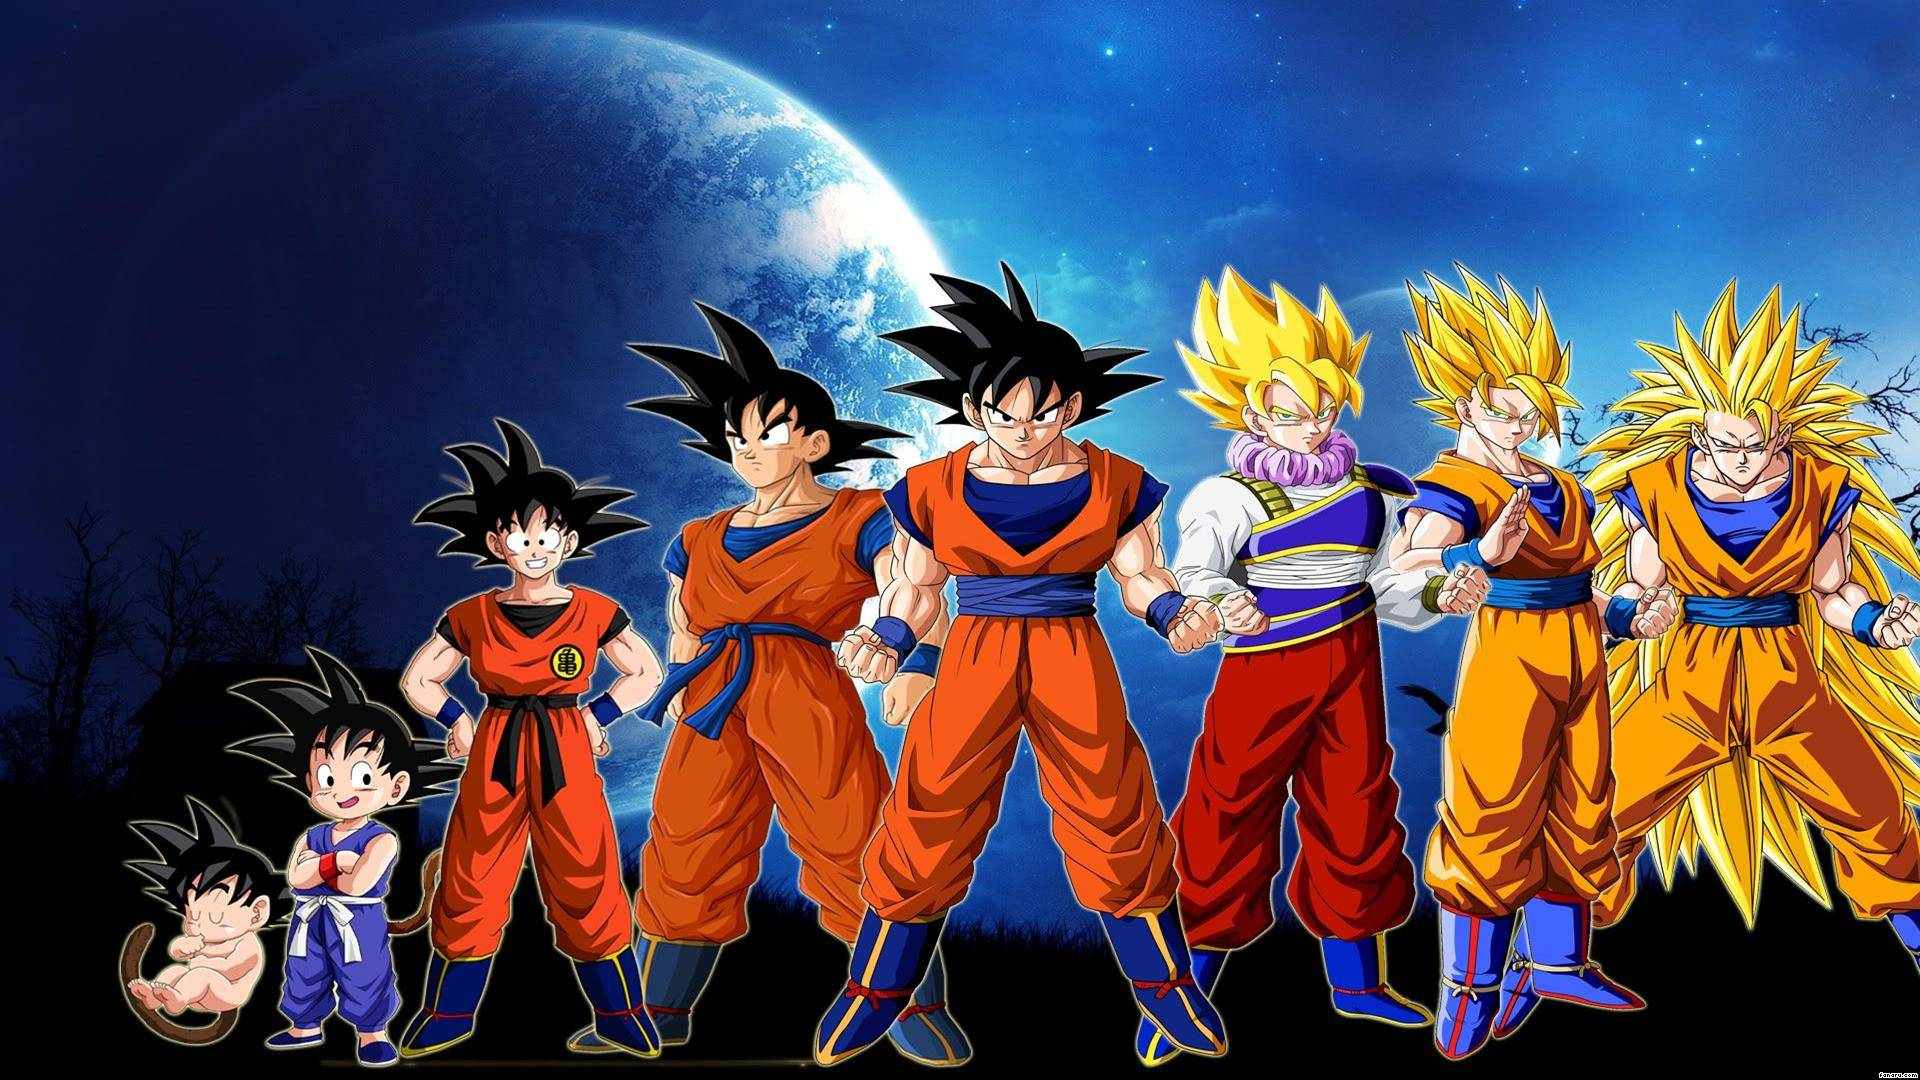 http://s1.picswalls.com/wallpapers/2015/09/27/awesome-dragon-ball-z-wallpaper_125241927_276.jpg